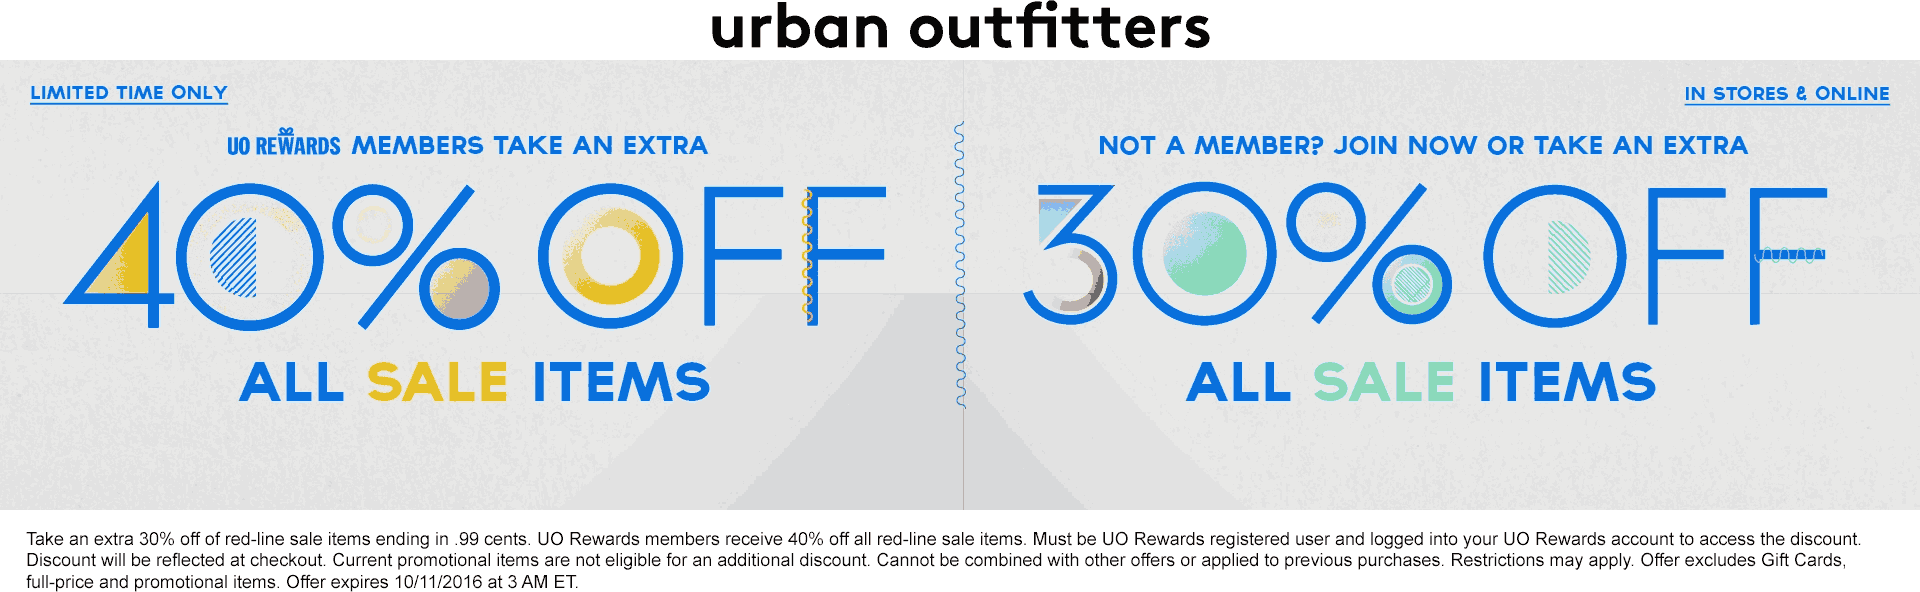 UrbanOutfitters.com Promo Coupon Extra 30% off sale items at Urban Outfitters, ditto online